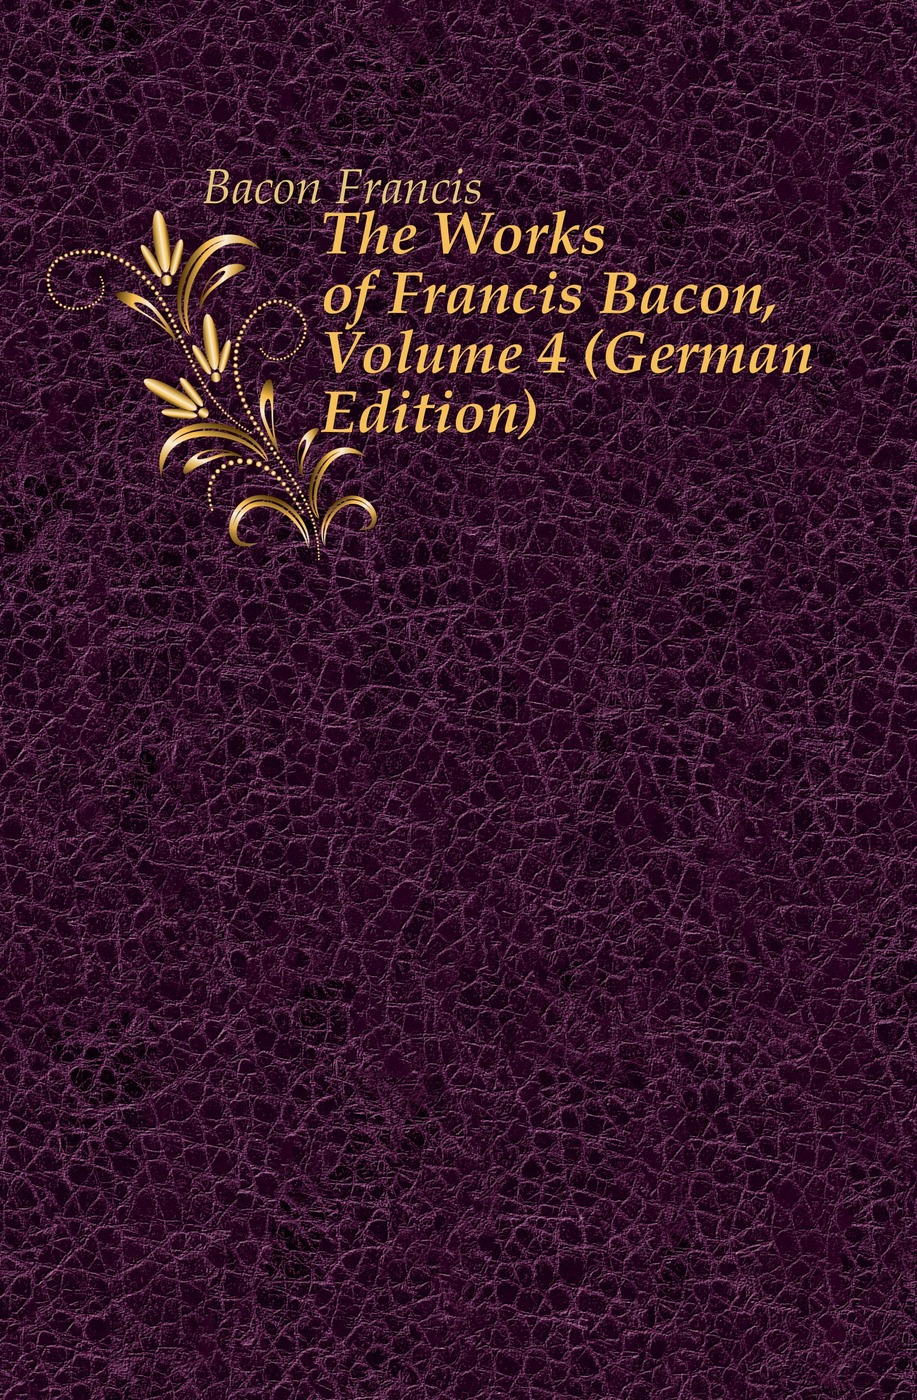 Фрэнсис Бэкон The Works of Francis Bacon, Volume 4 (German Edition) фрэнсис бэкон the works of francis bacon volume 13